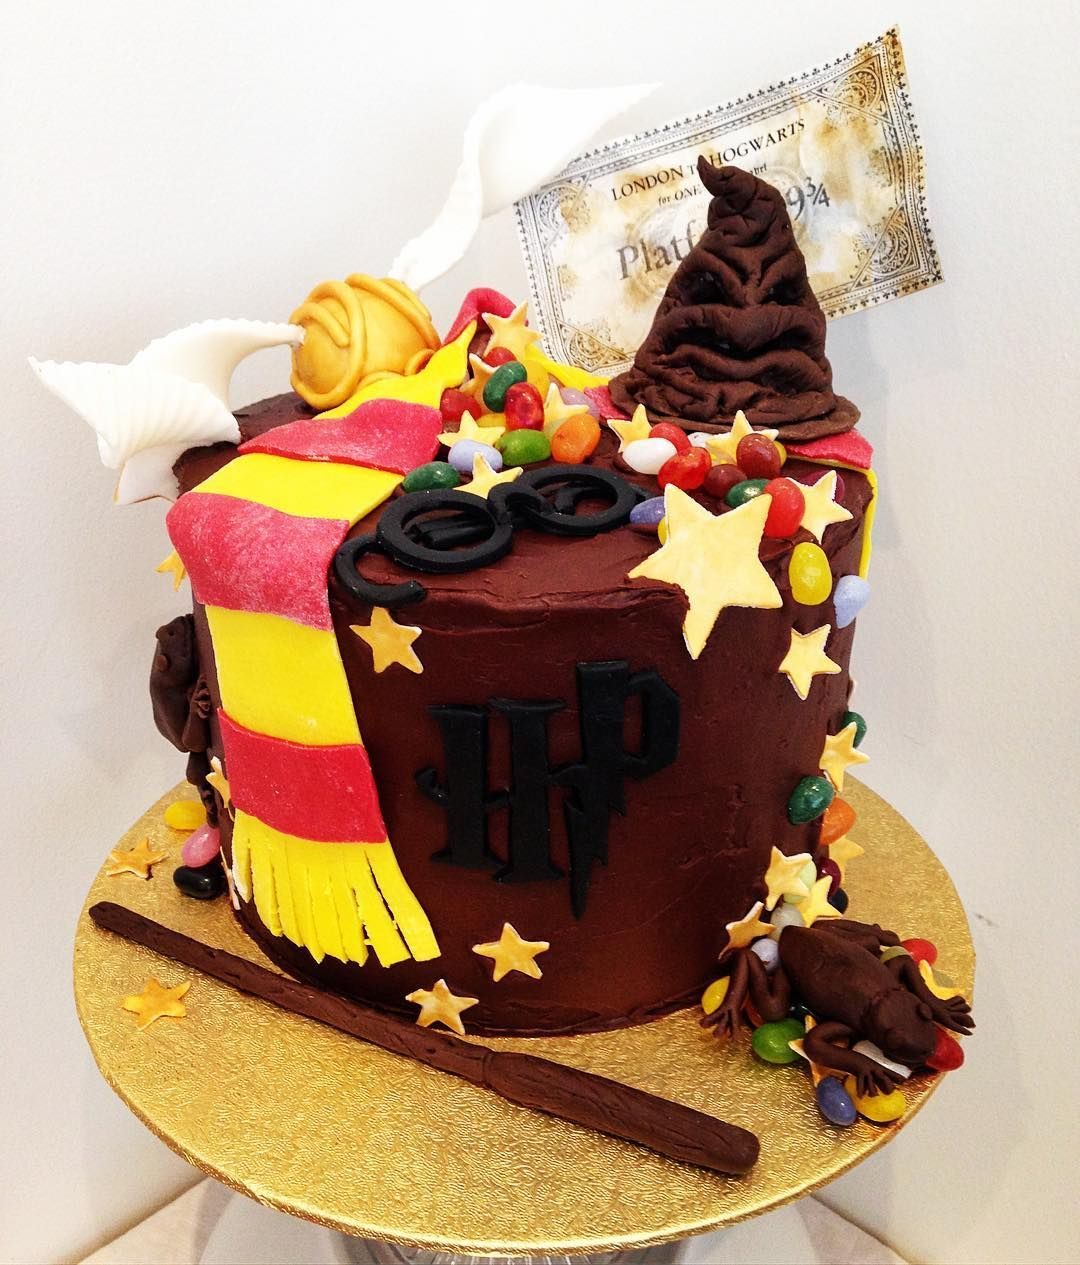 35 Harry Potter Cake Ideas For Your Child S Next Birthday Harry Potter Birthday Cake Harry Potter Cake Birthday Cake Kids